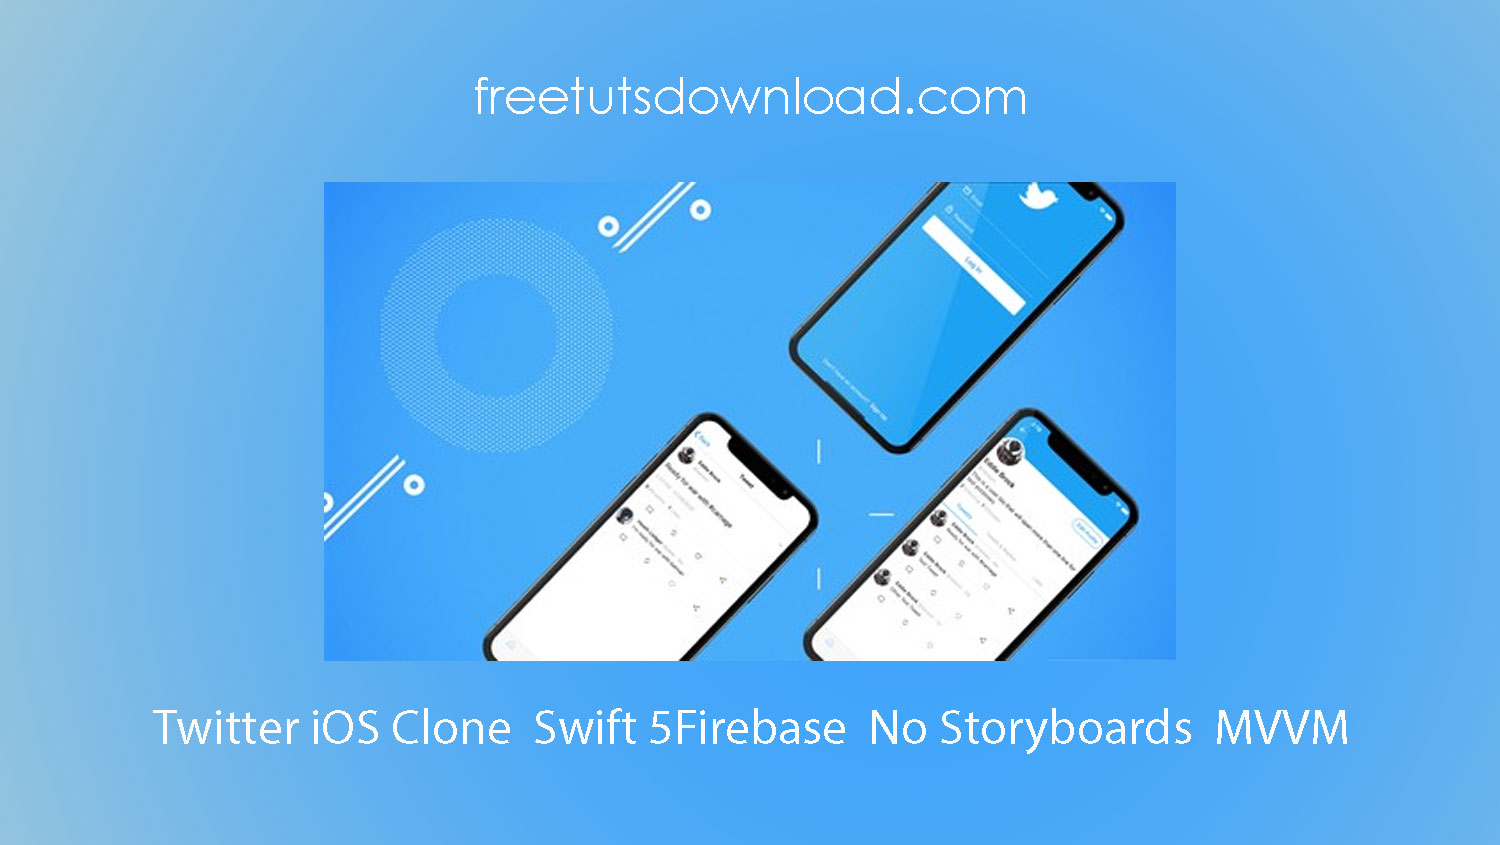 Twitter iOS Clone Swift 5Firebase No Storyboards MVVM